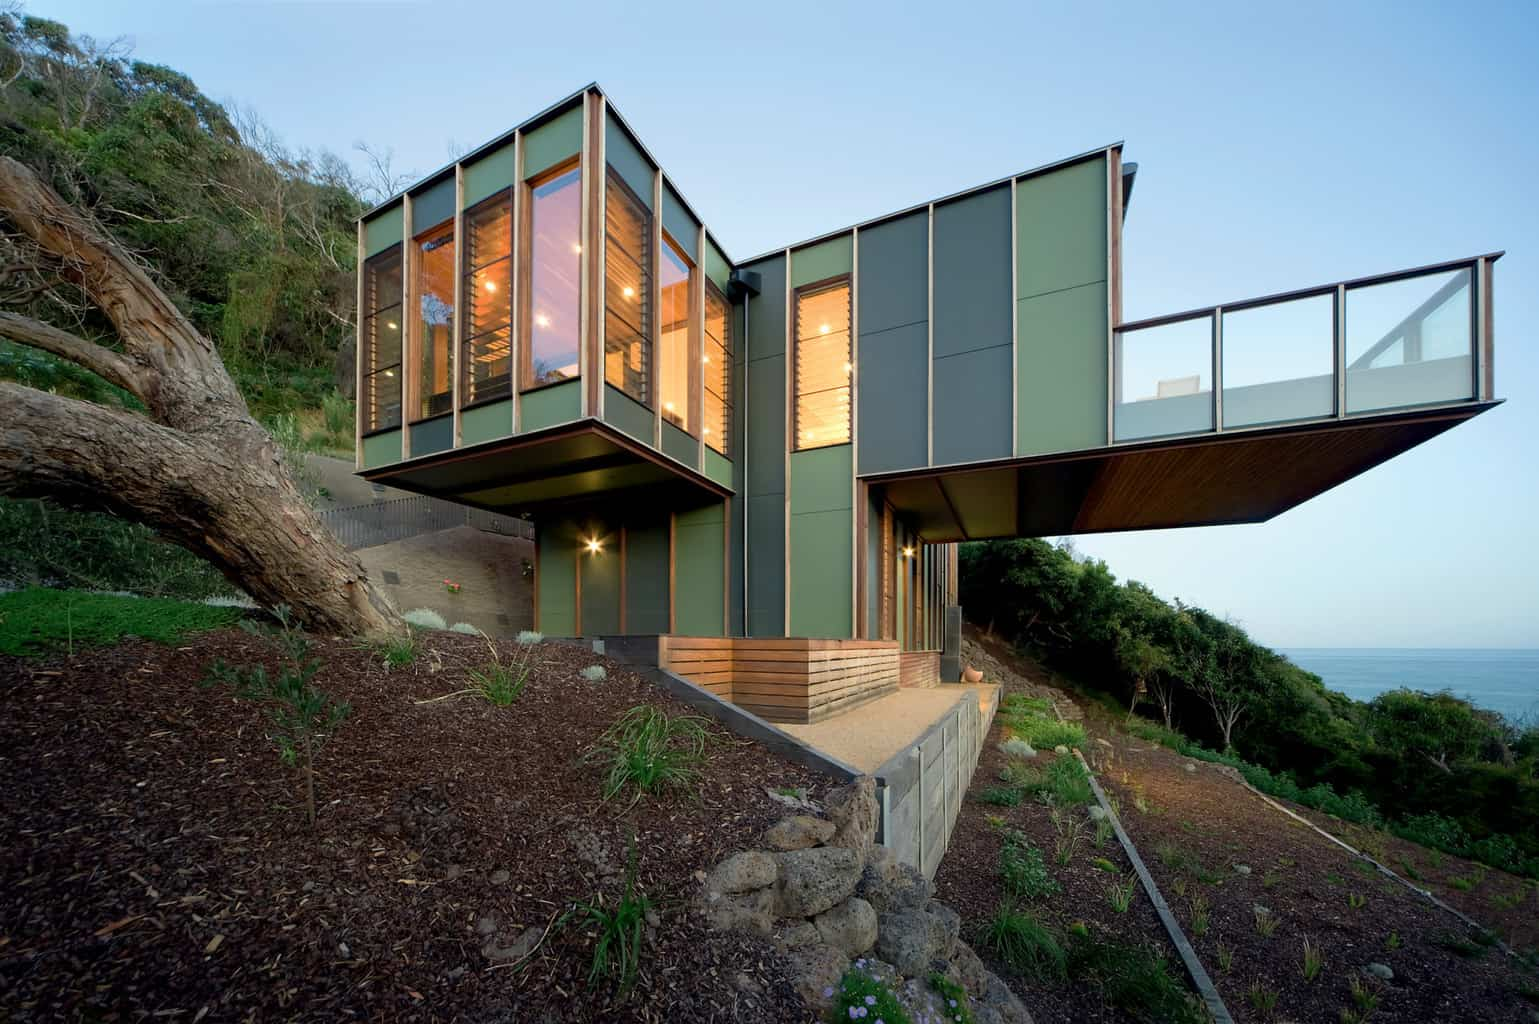 Treehouse designed to dissolve into the landscape